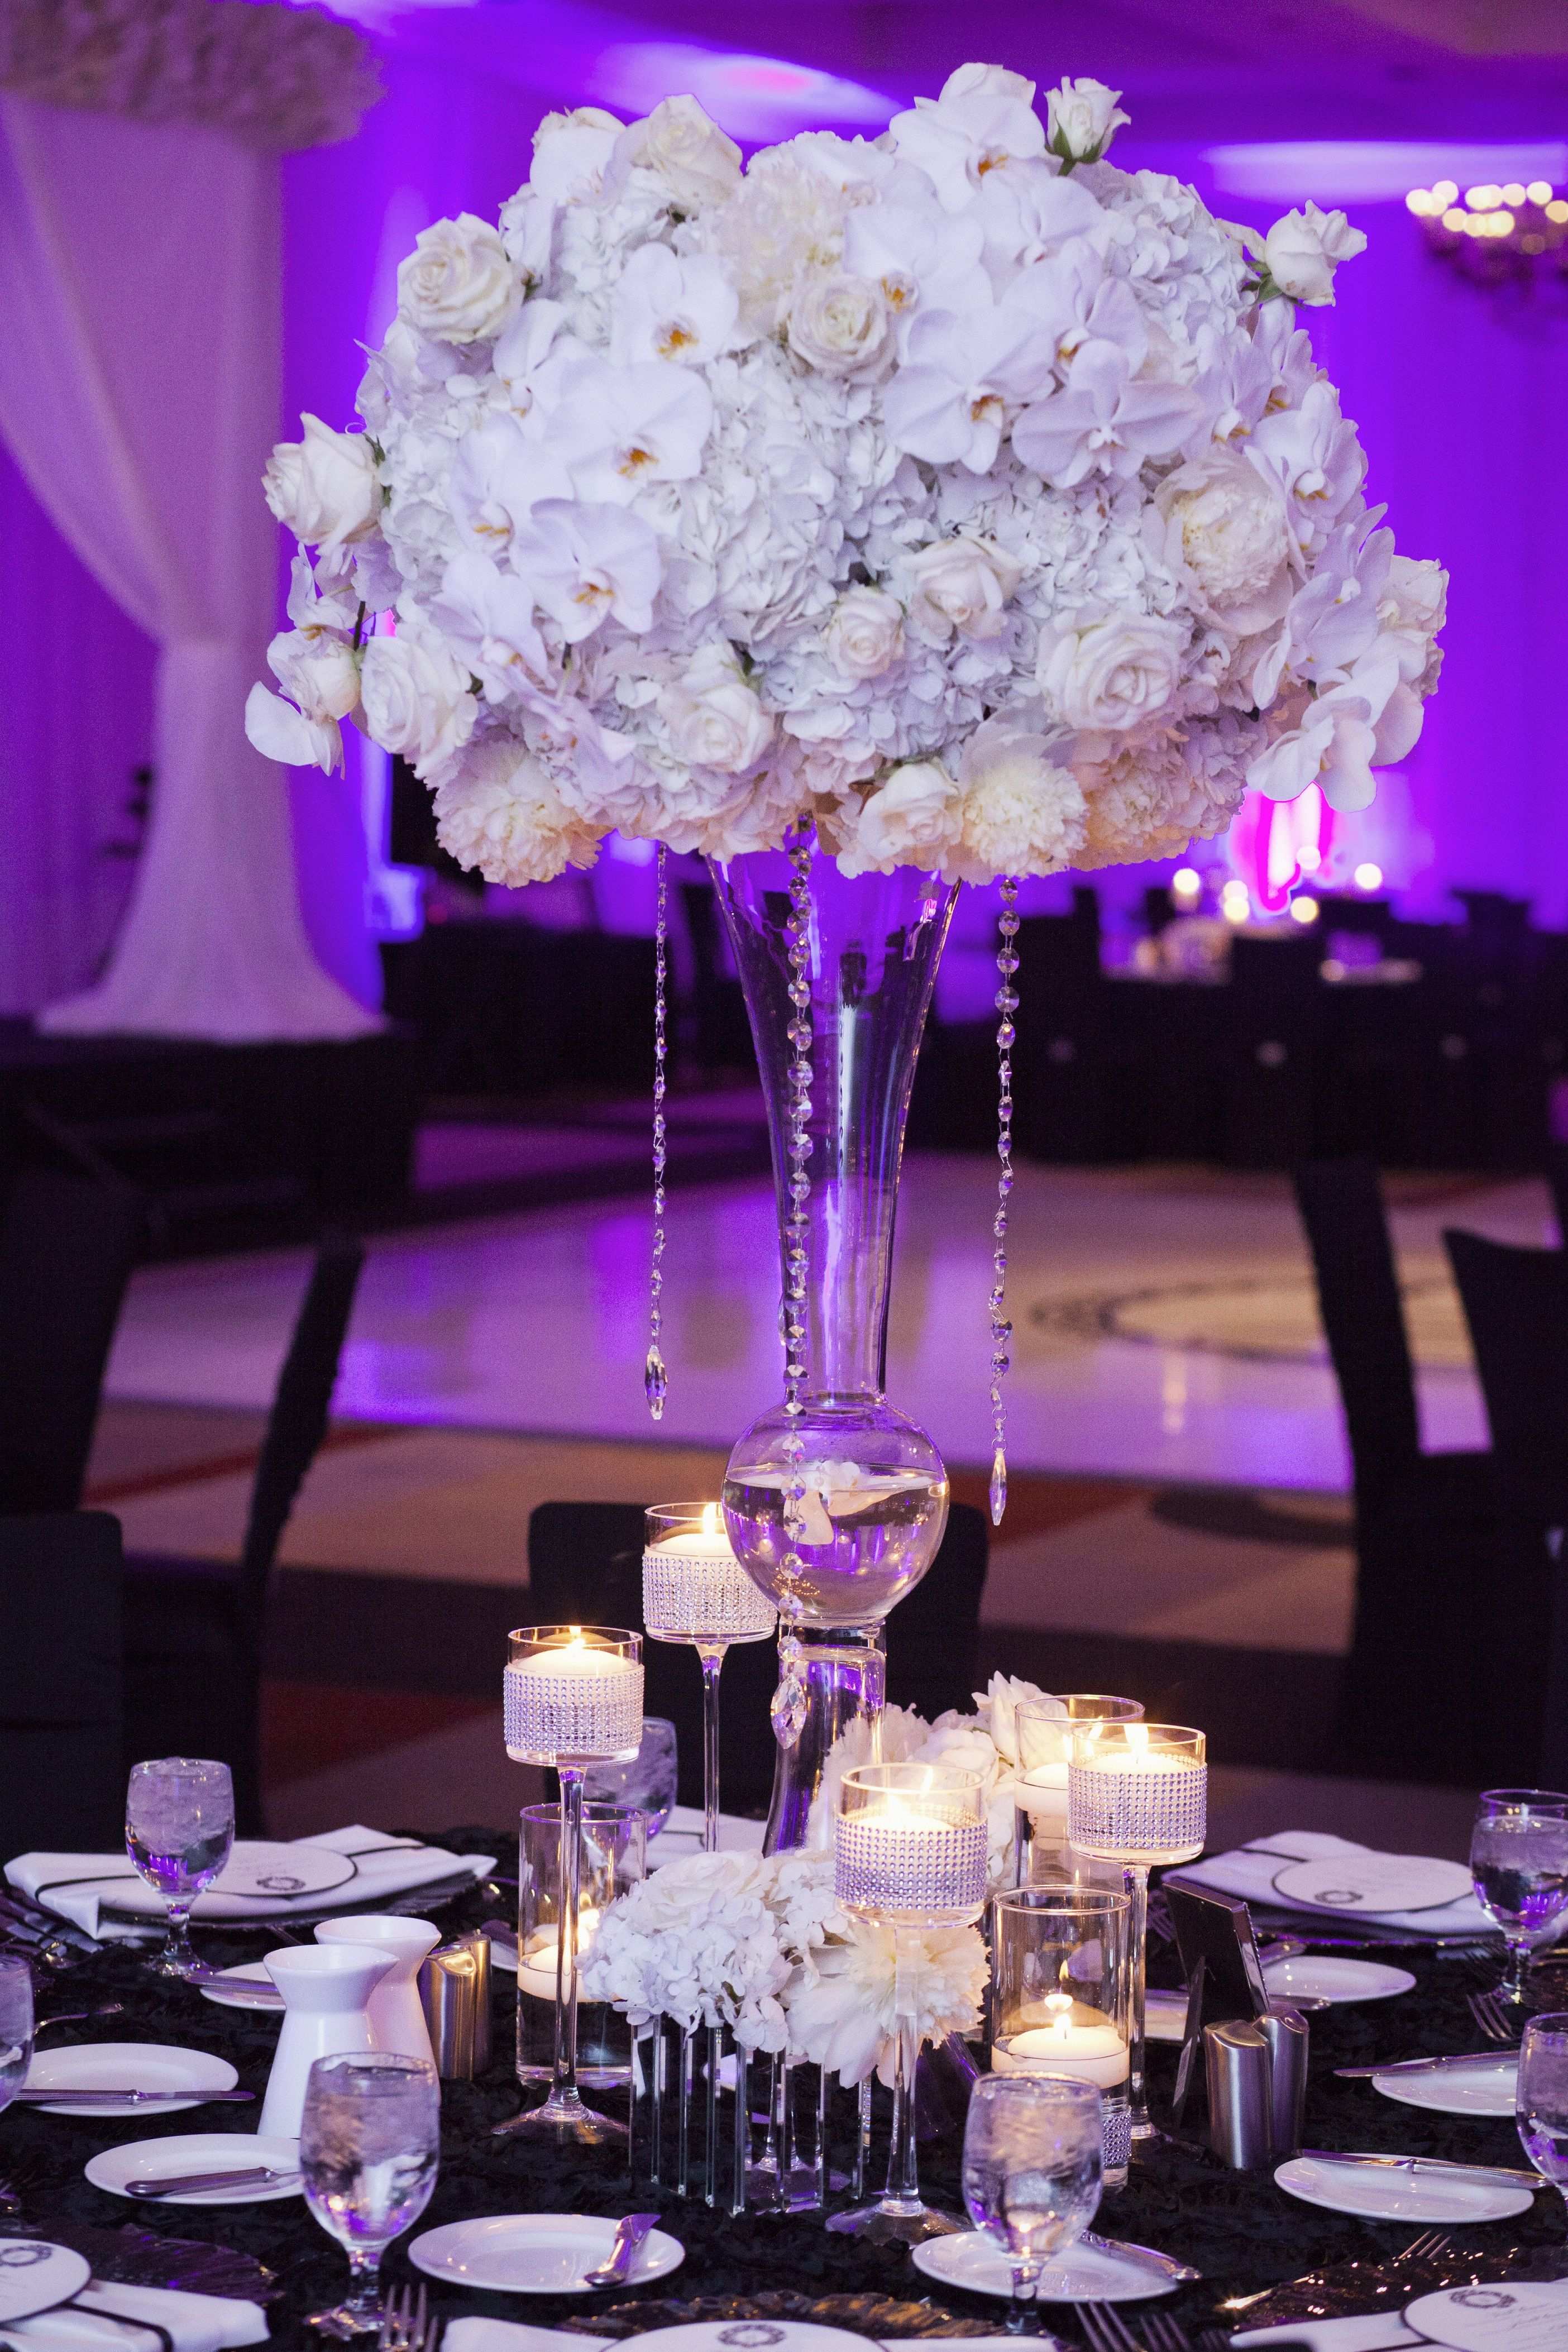 White Flower Ball With Hanging Jewels And Crystals Weddings